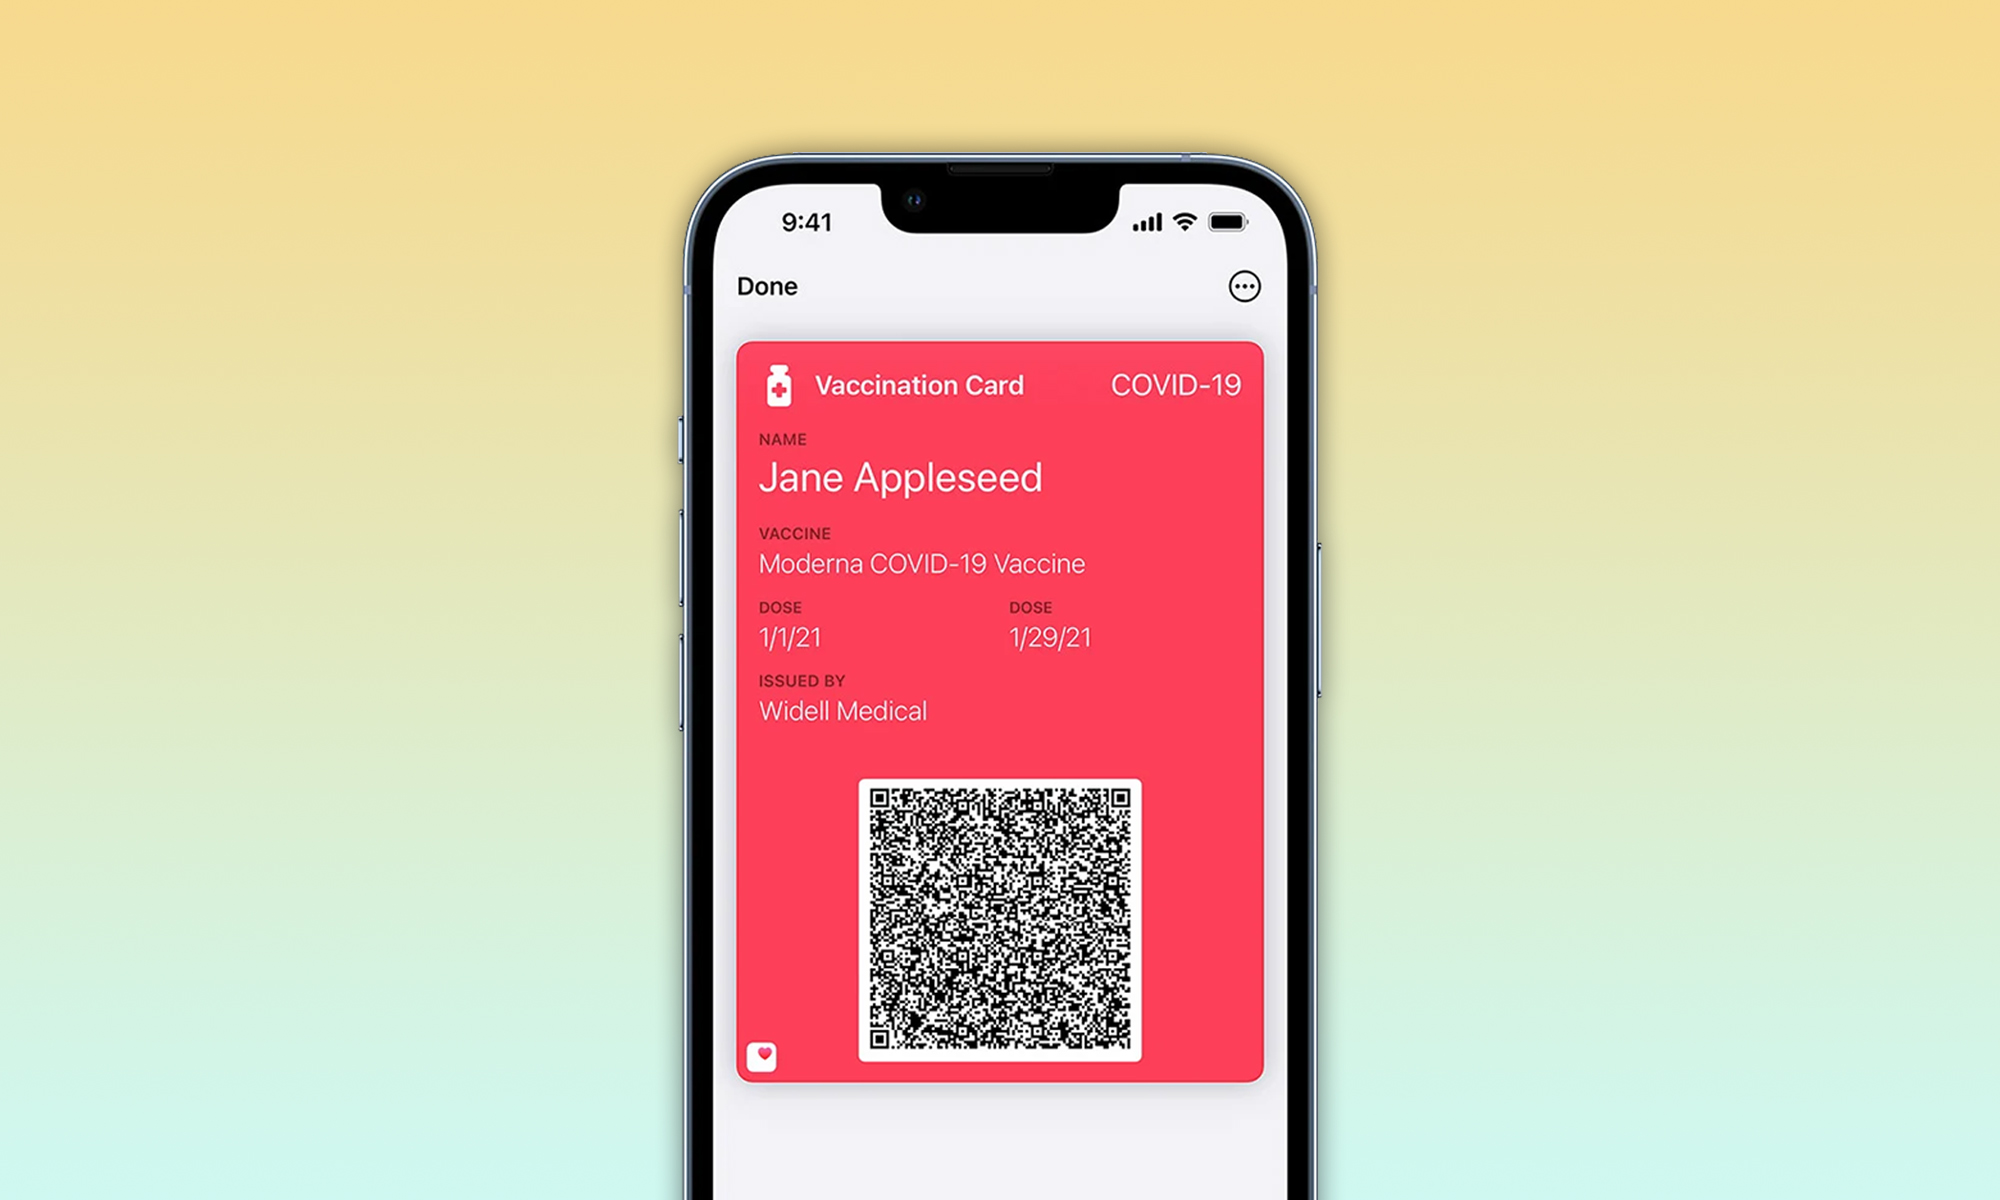 apple wallet will be able to store covid-19 vaccination cards